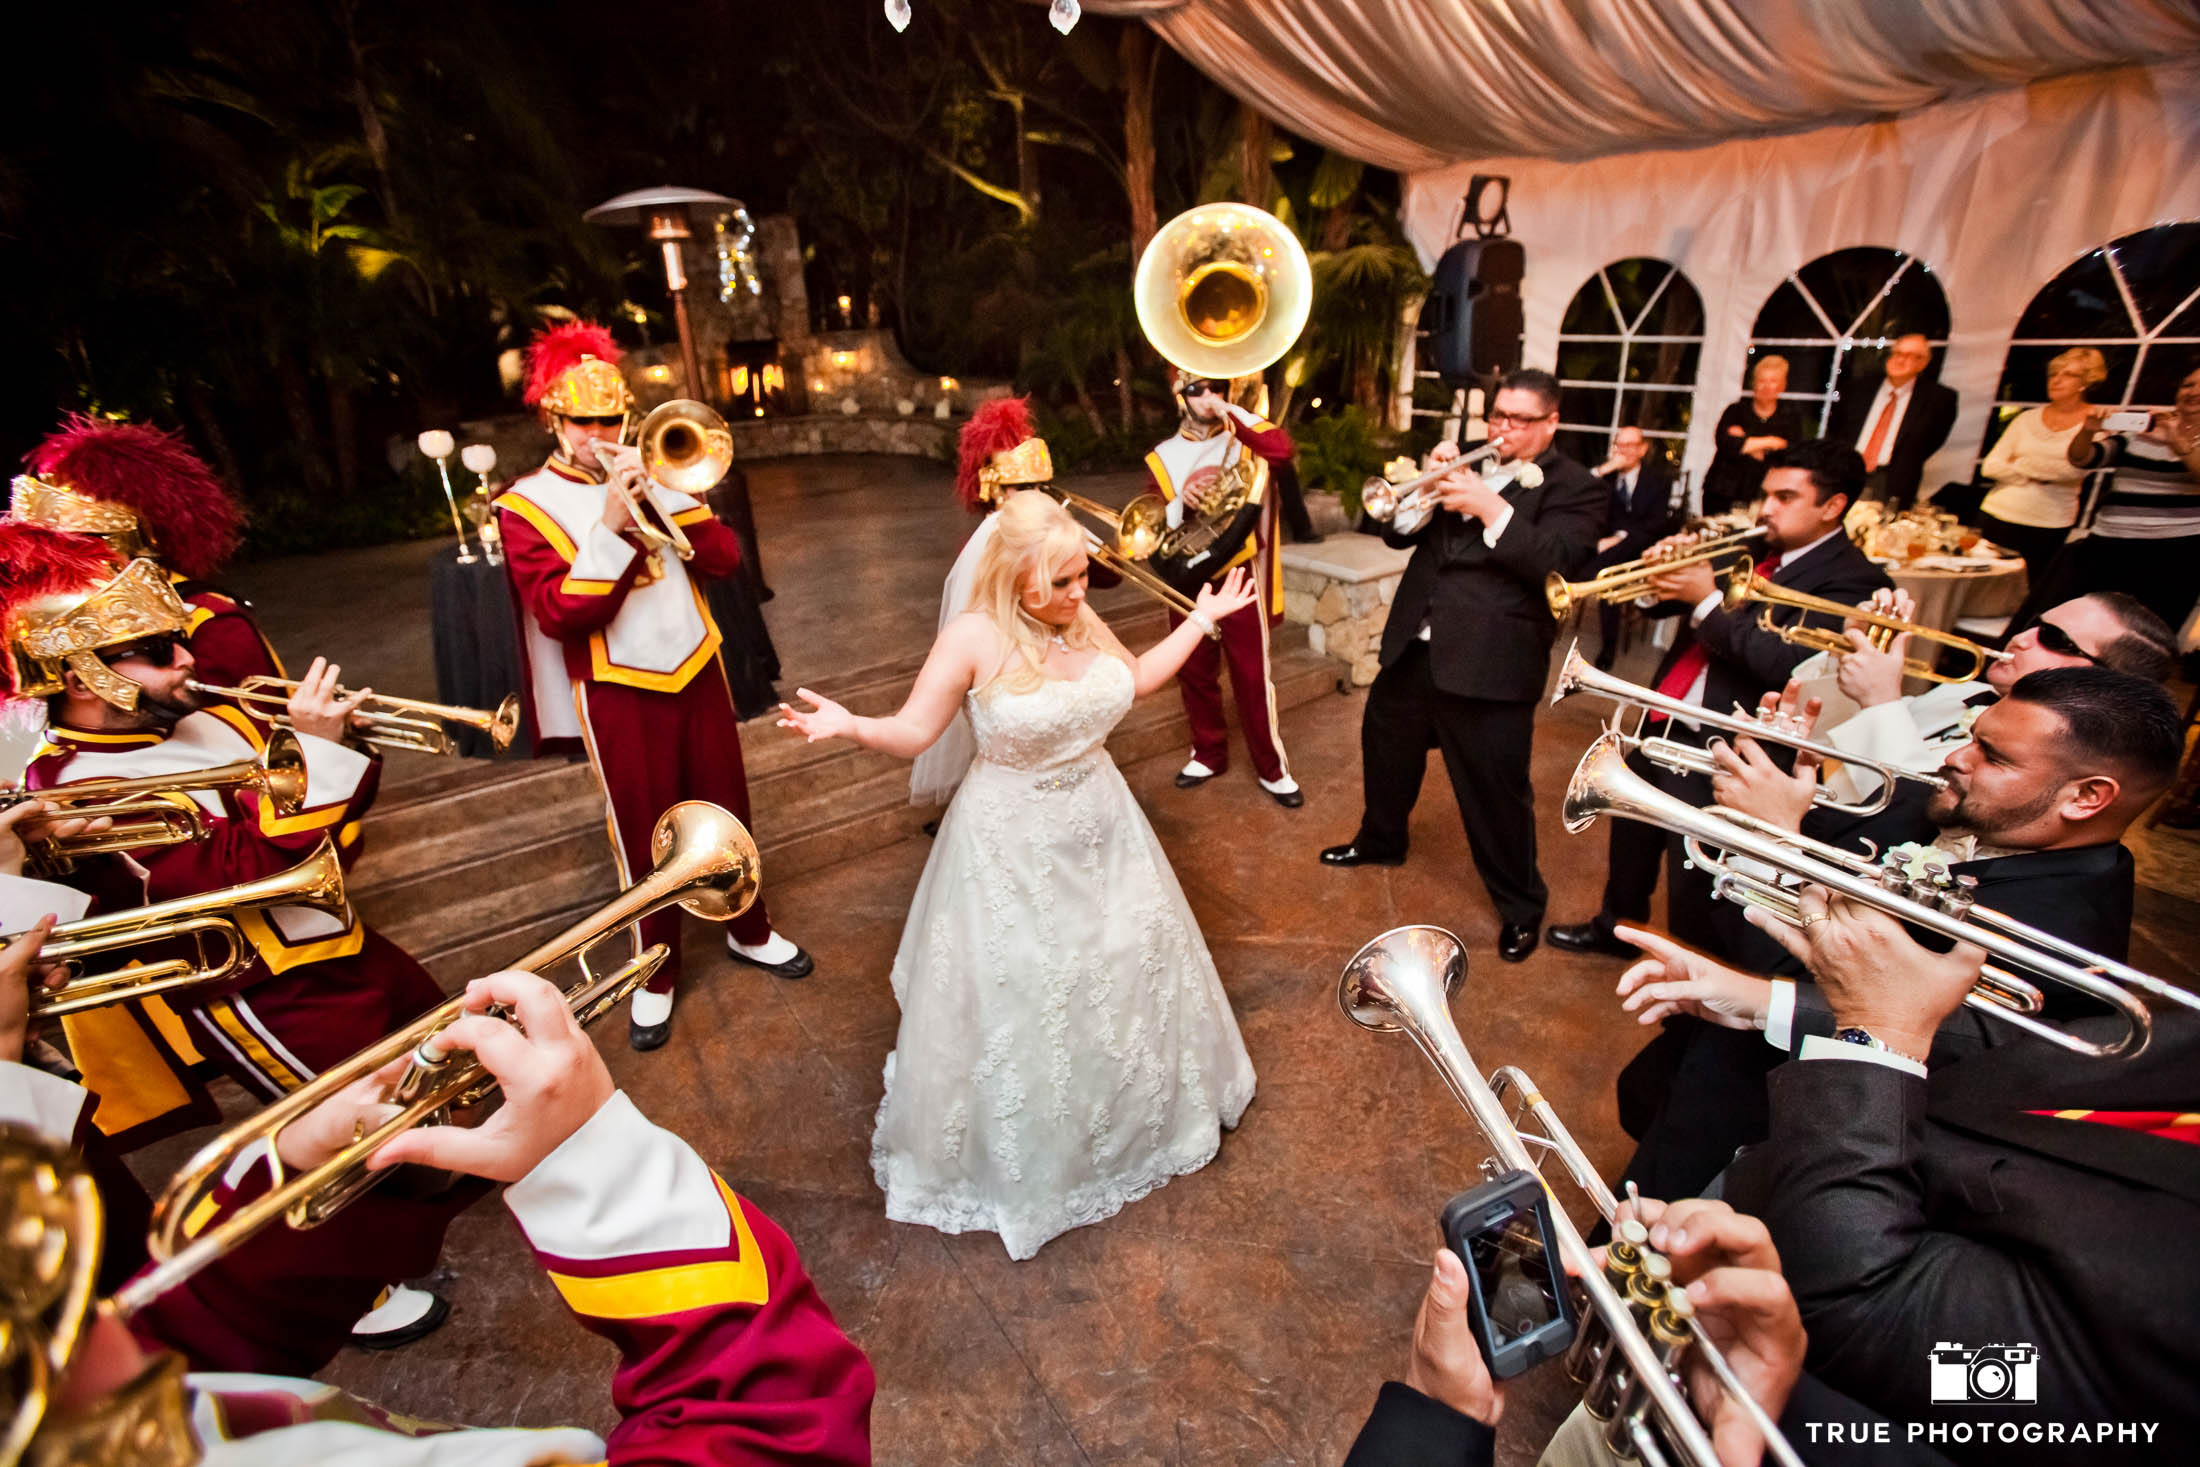 Bride serenaded by band of musicians during wedding reception